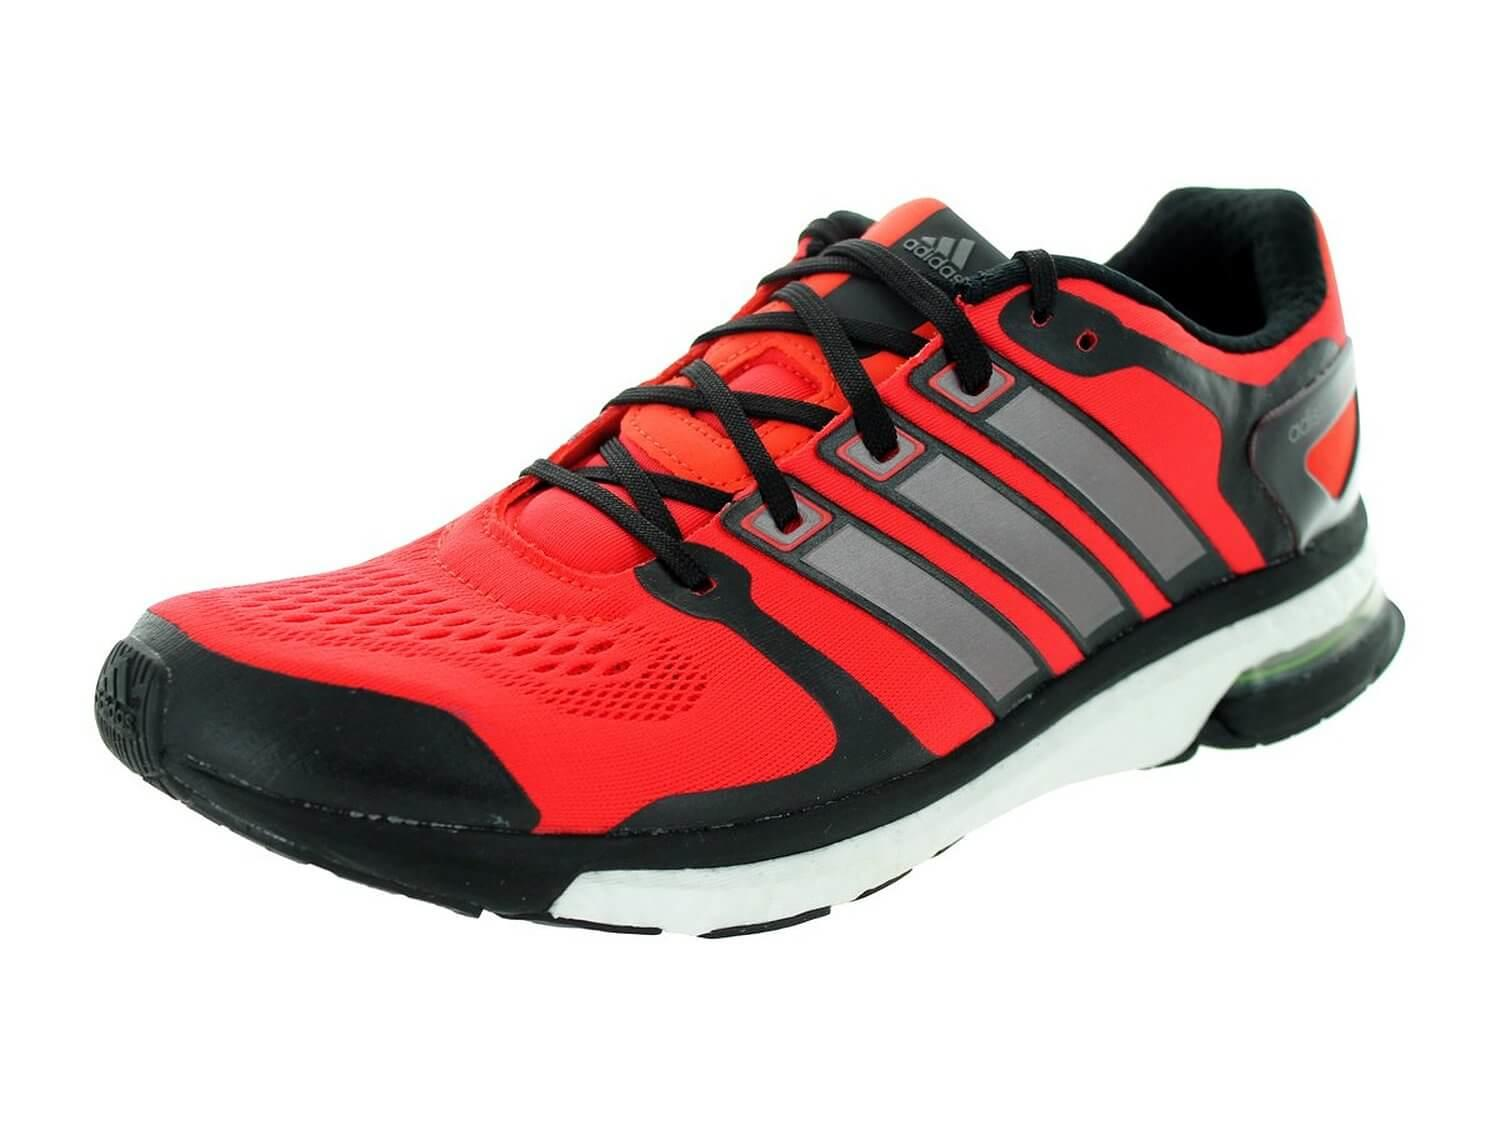 Best Adidas Running Shoes Reviewed & Compared in 2017